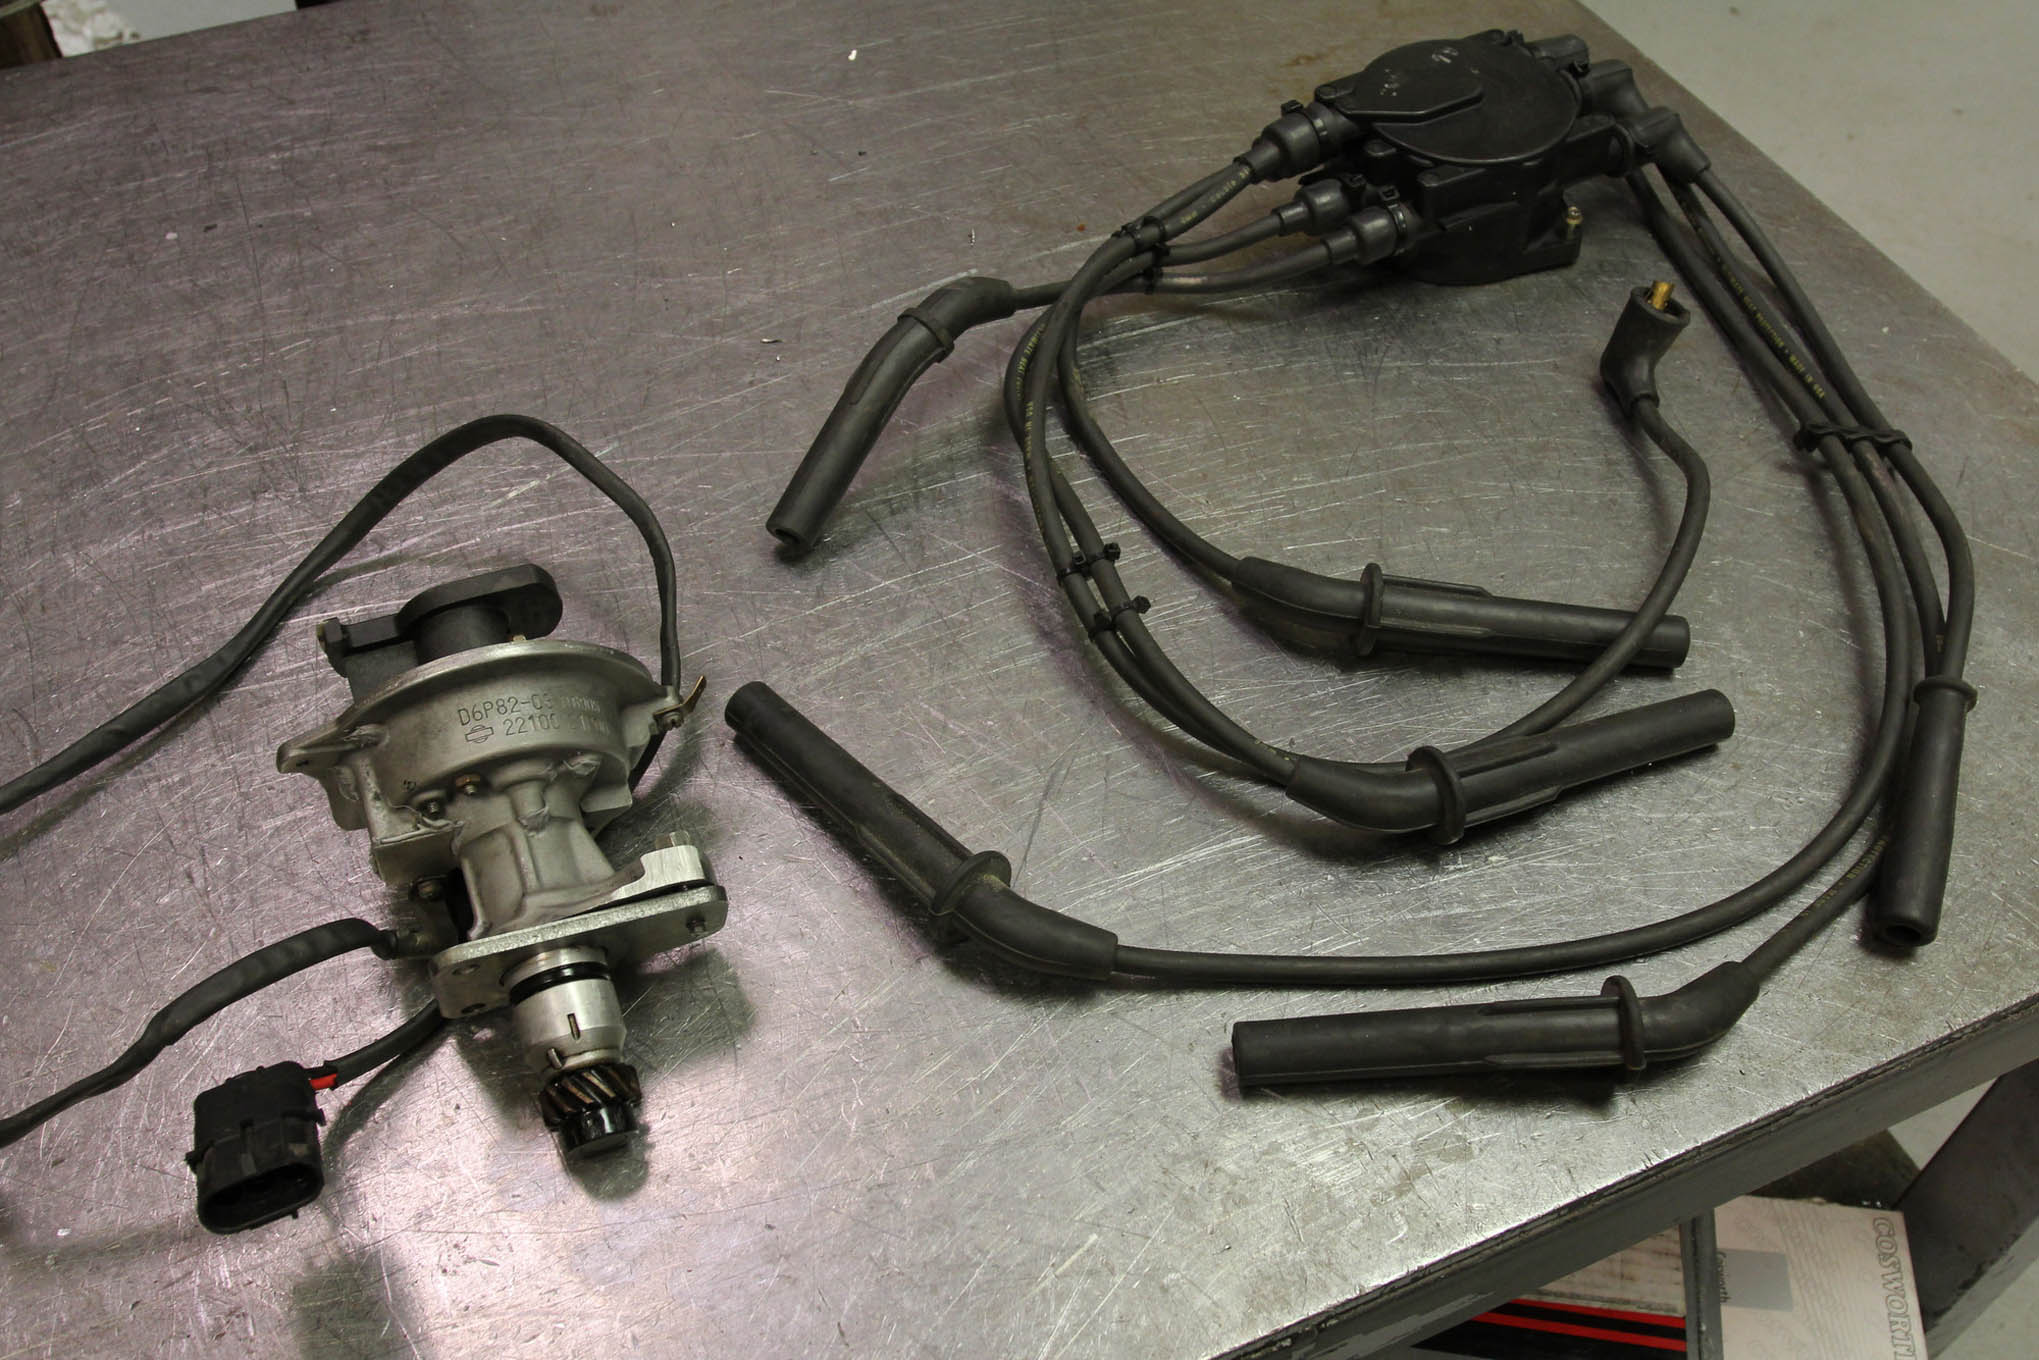 Despite switching from fuel injection to a carburetor, the OEM electrical system can be retained. KT Engines simply checked over everything to make sure it was working optimally before reinstallation.